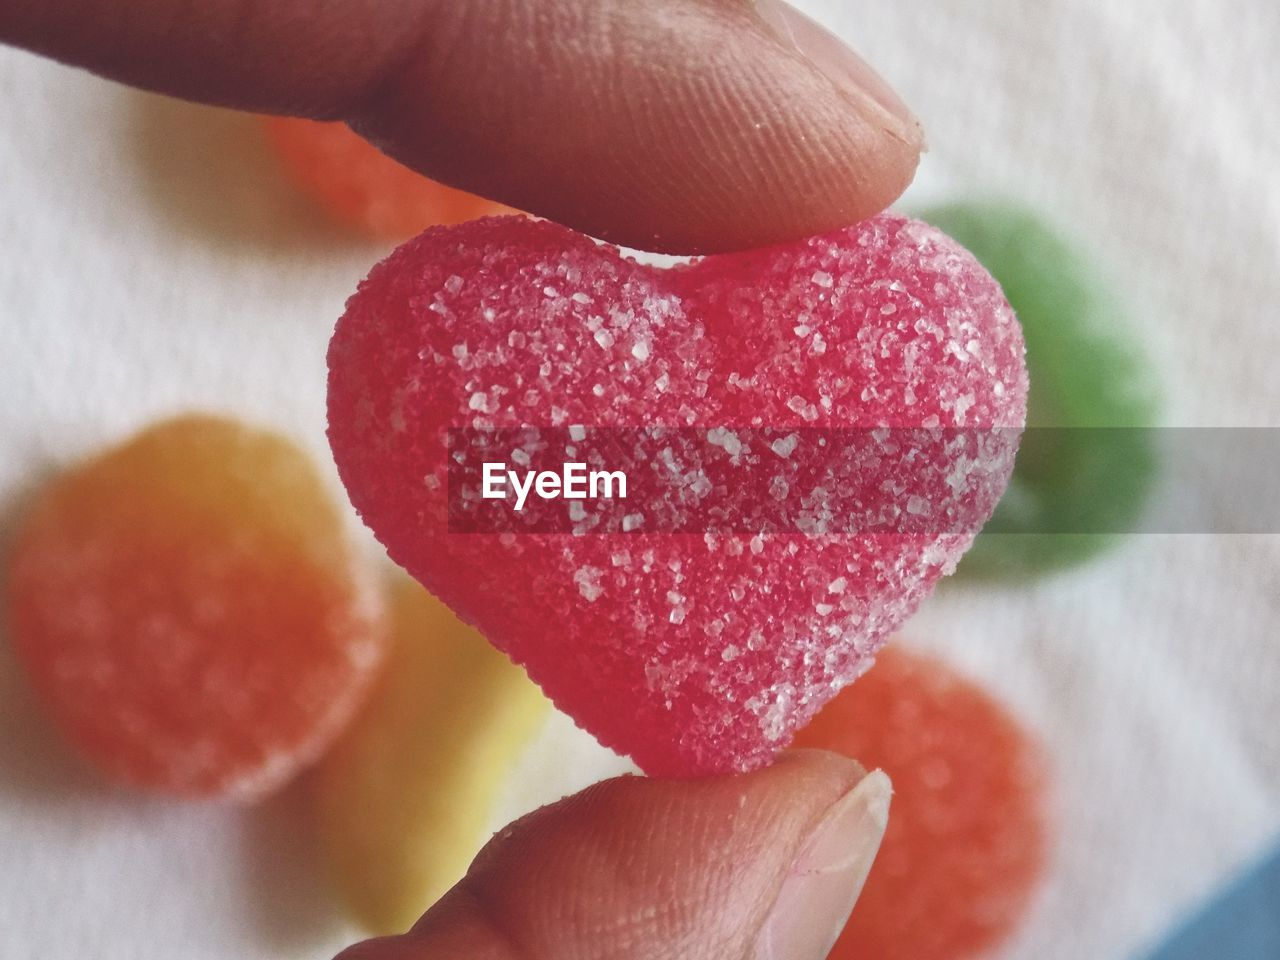 human hand, hand, human body part, finger, human finger, real people, food and drink, food, holding, close-up, one person, body part, unrecognizable person, red, freshness, sweet food, sweet, unhealthy eating, fruit, temptation, nail